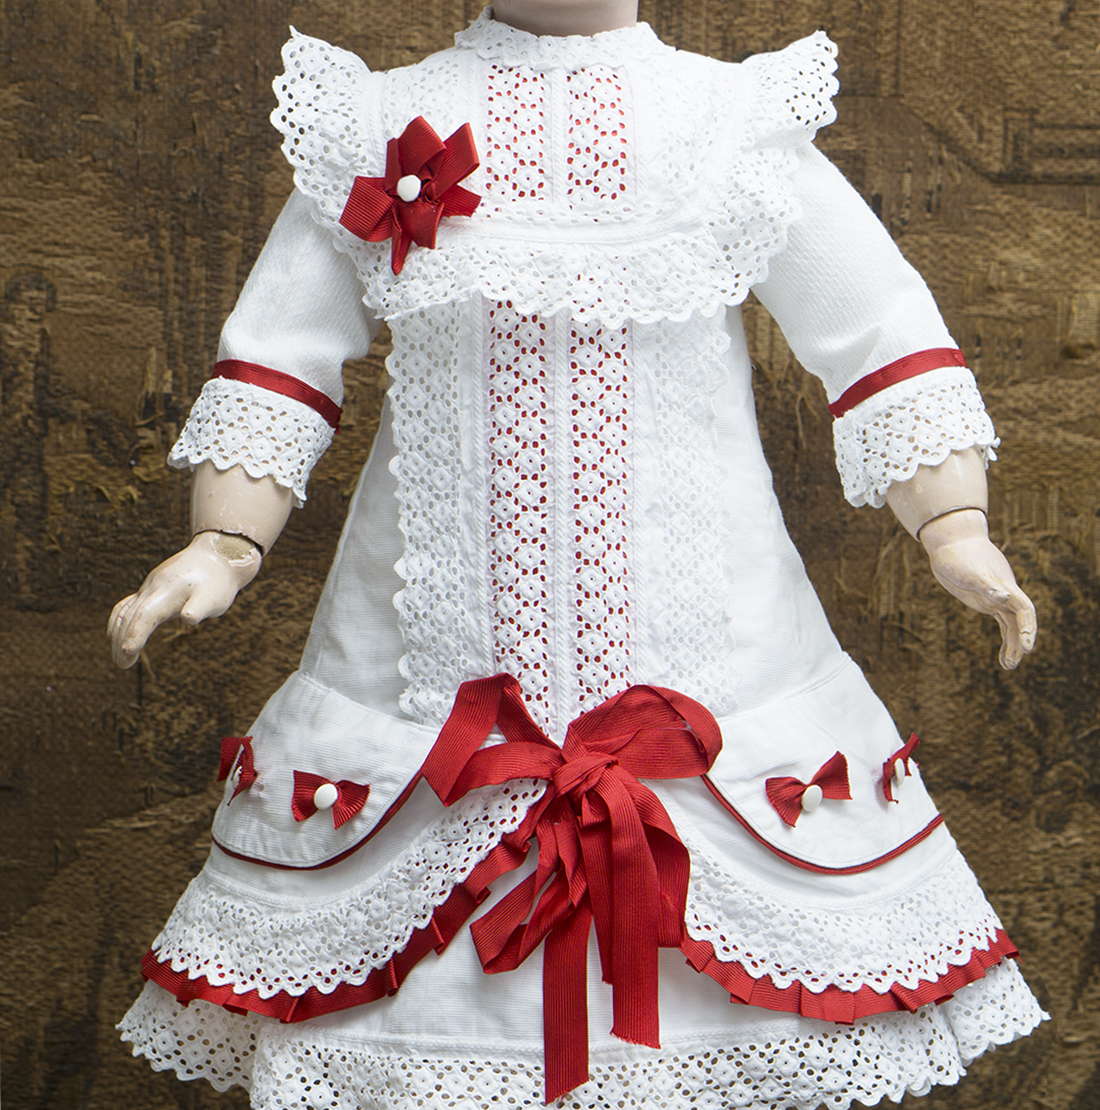 Antique original white pique dress